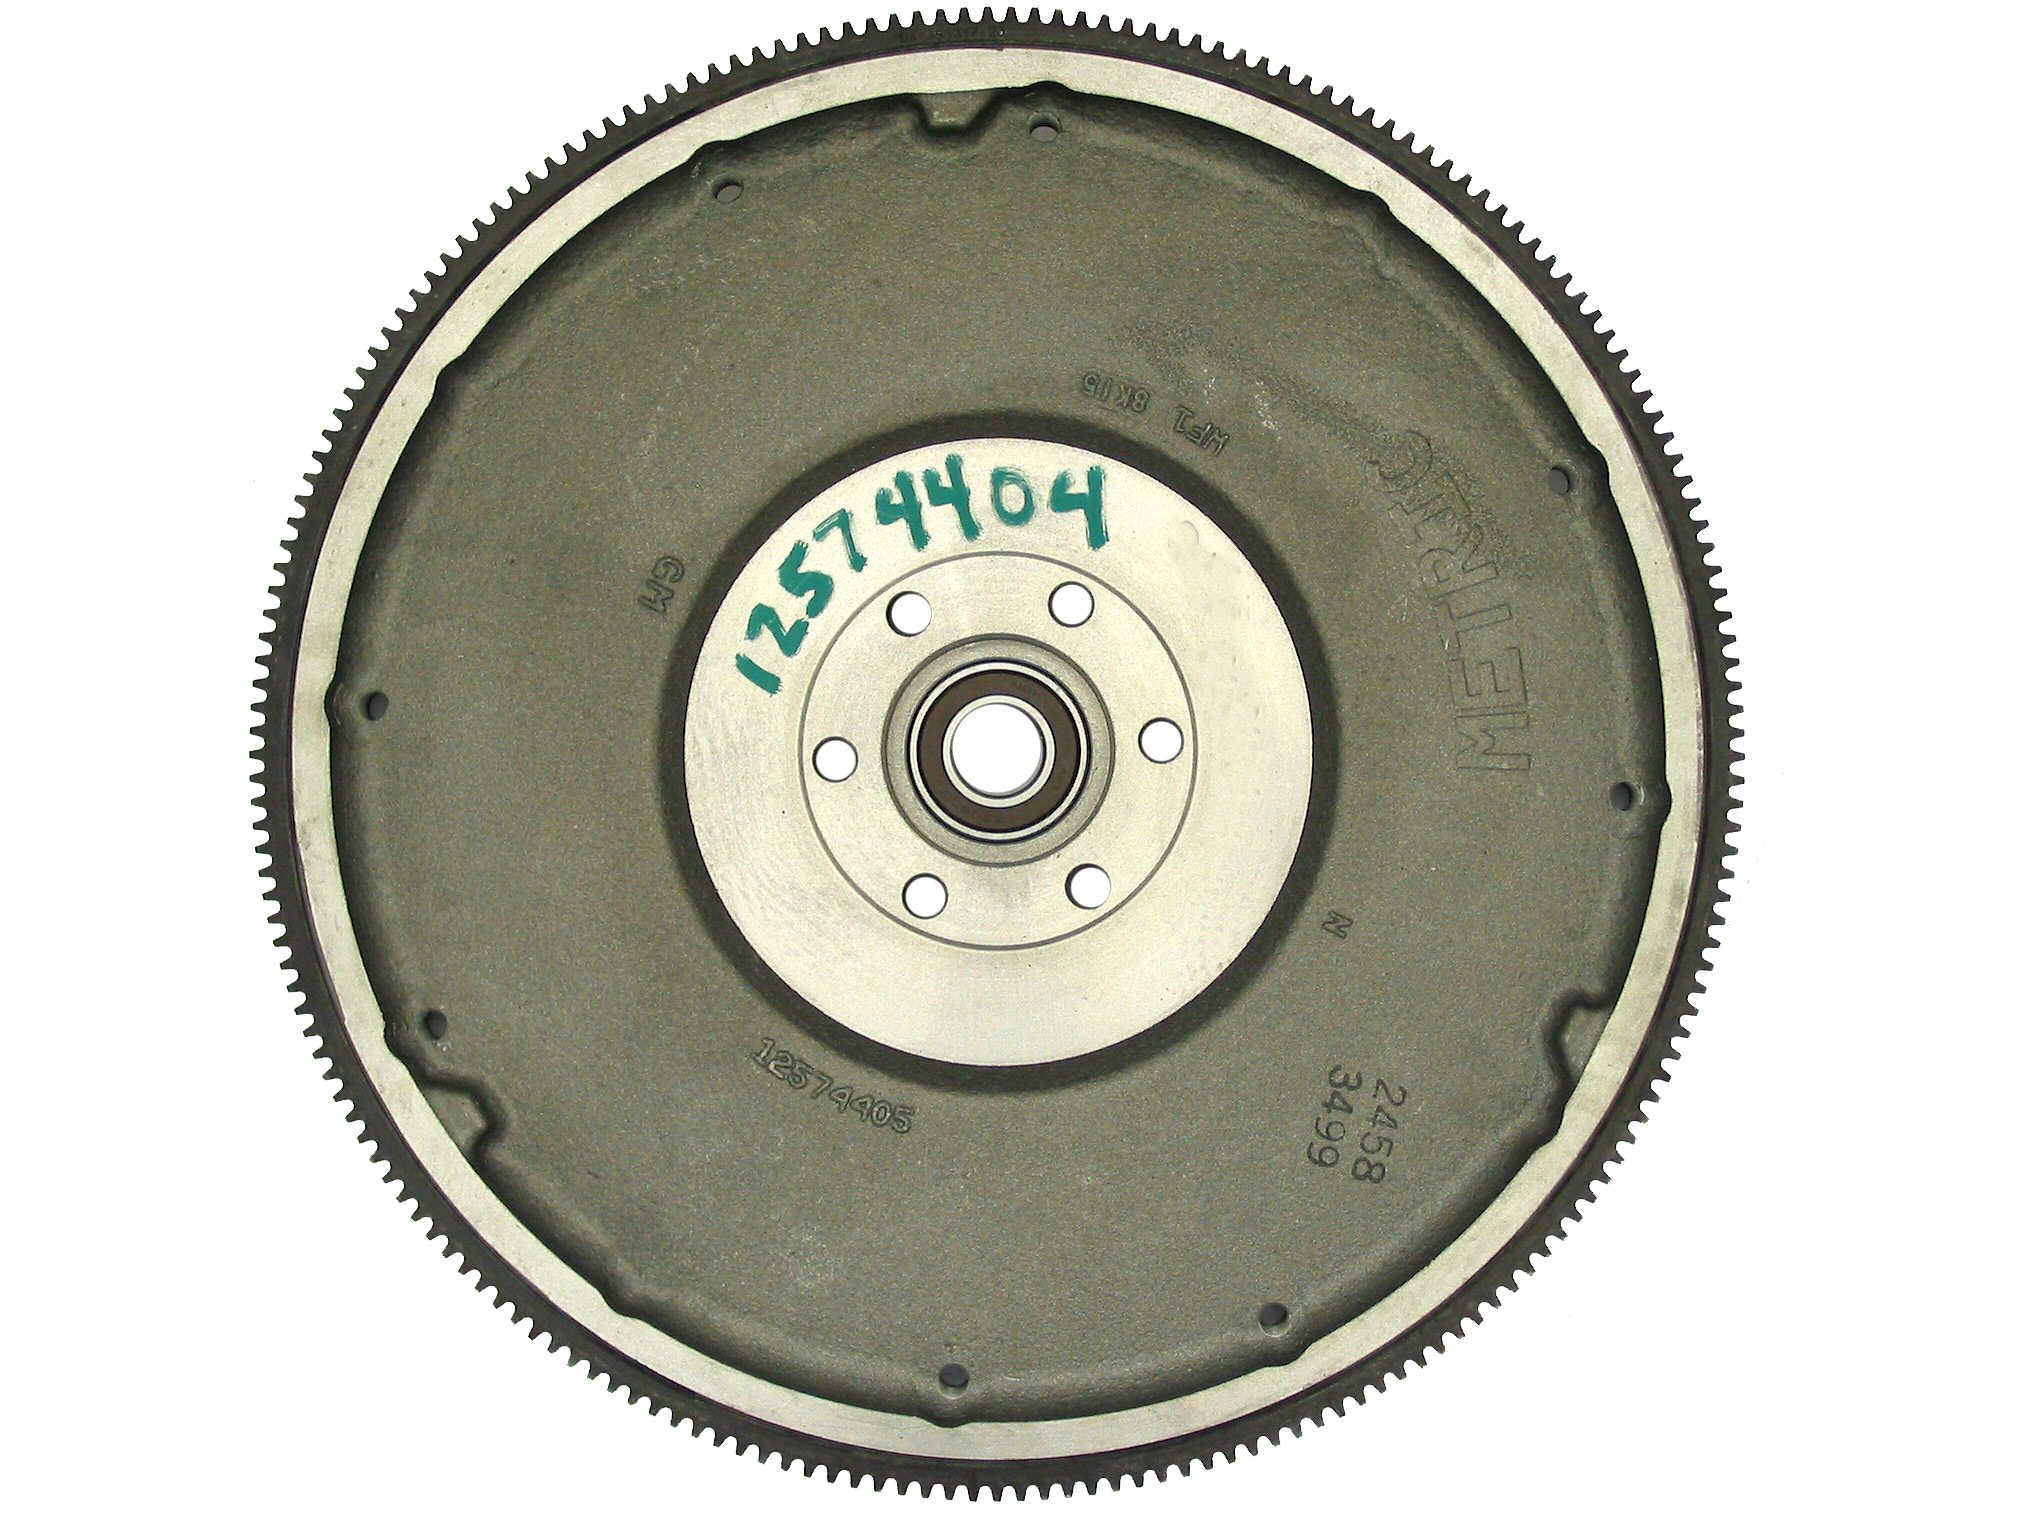 12574404 GM Medium Duty Flywheel Rear View